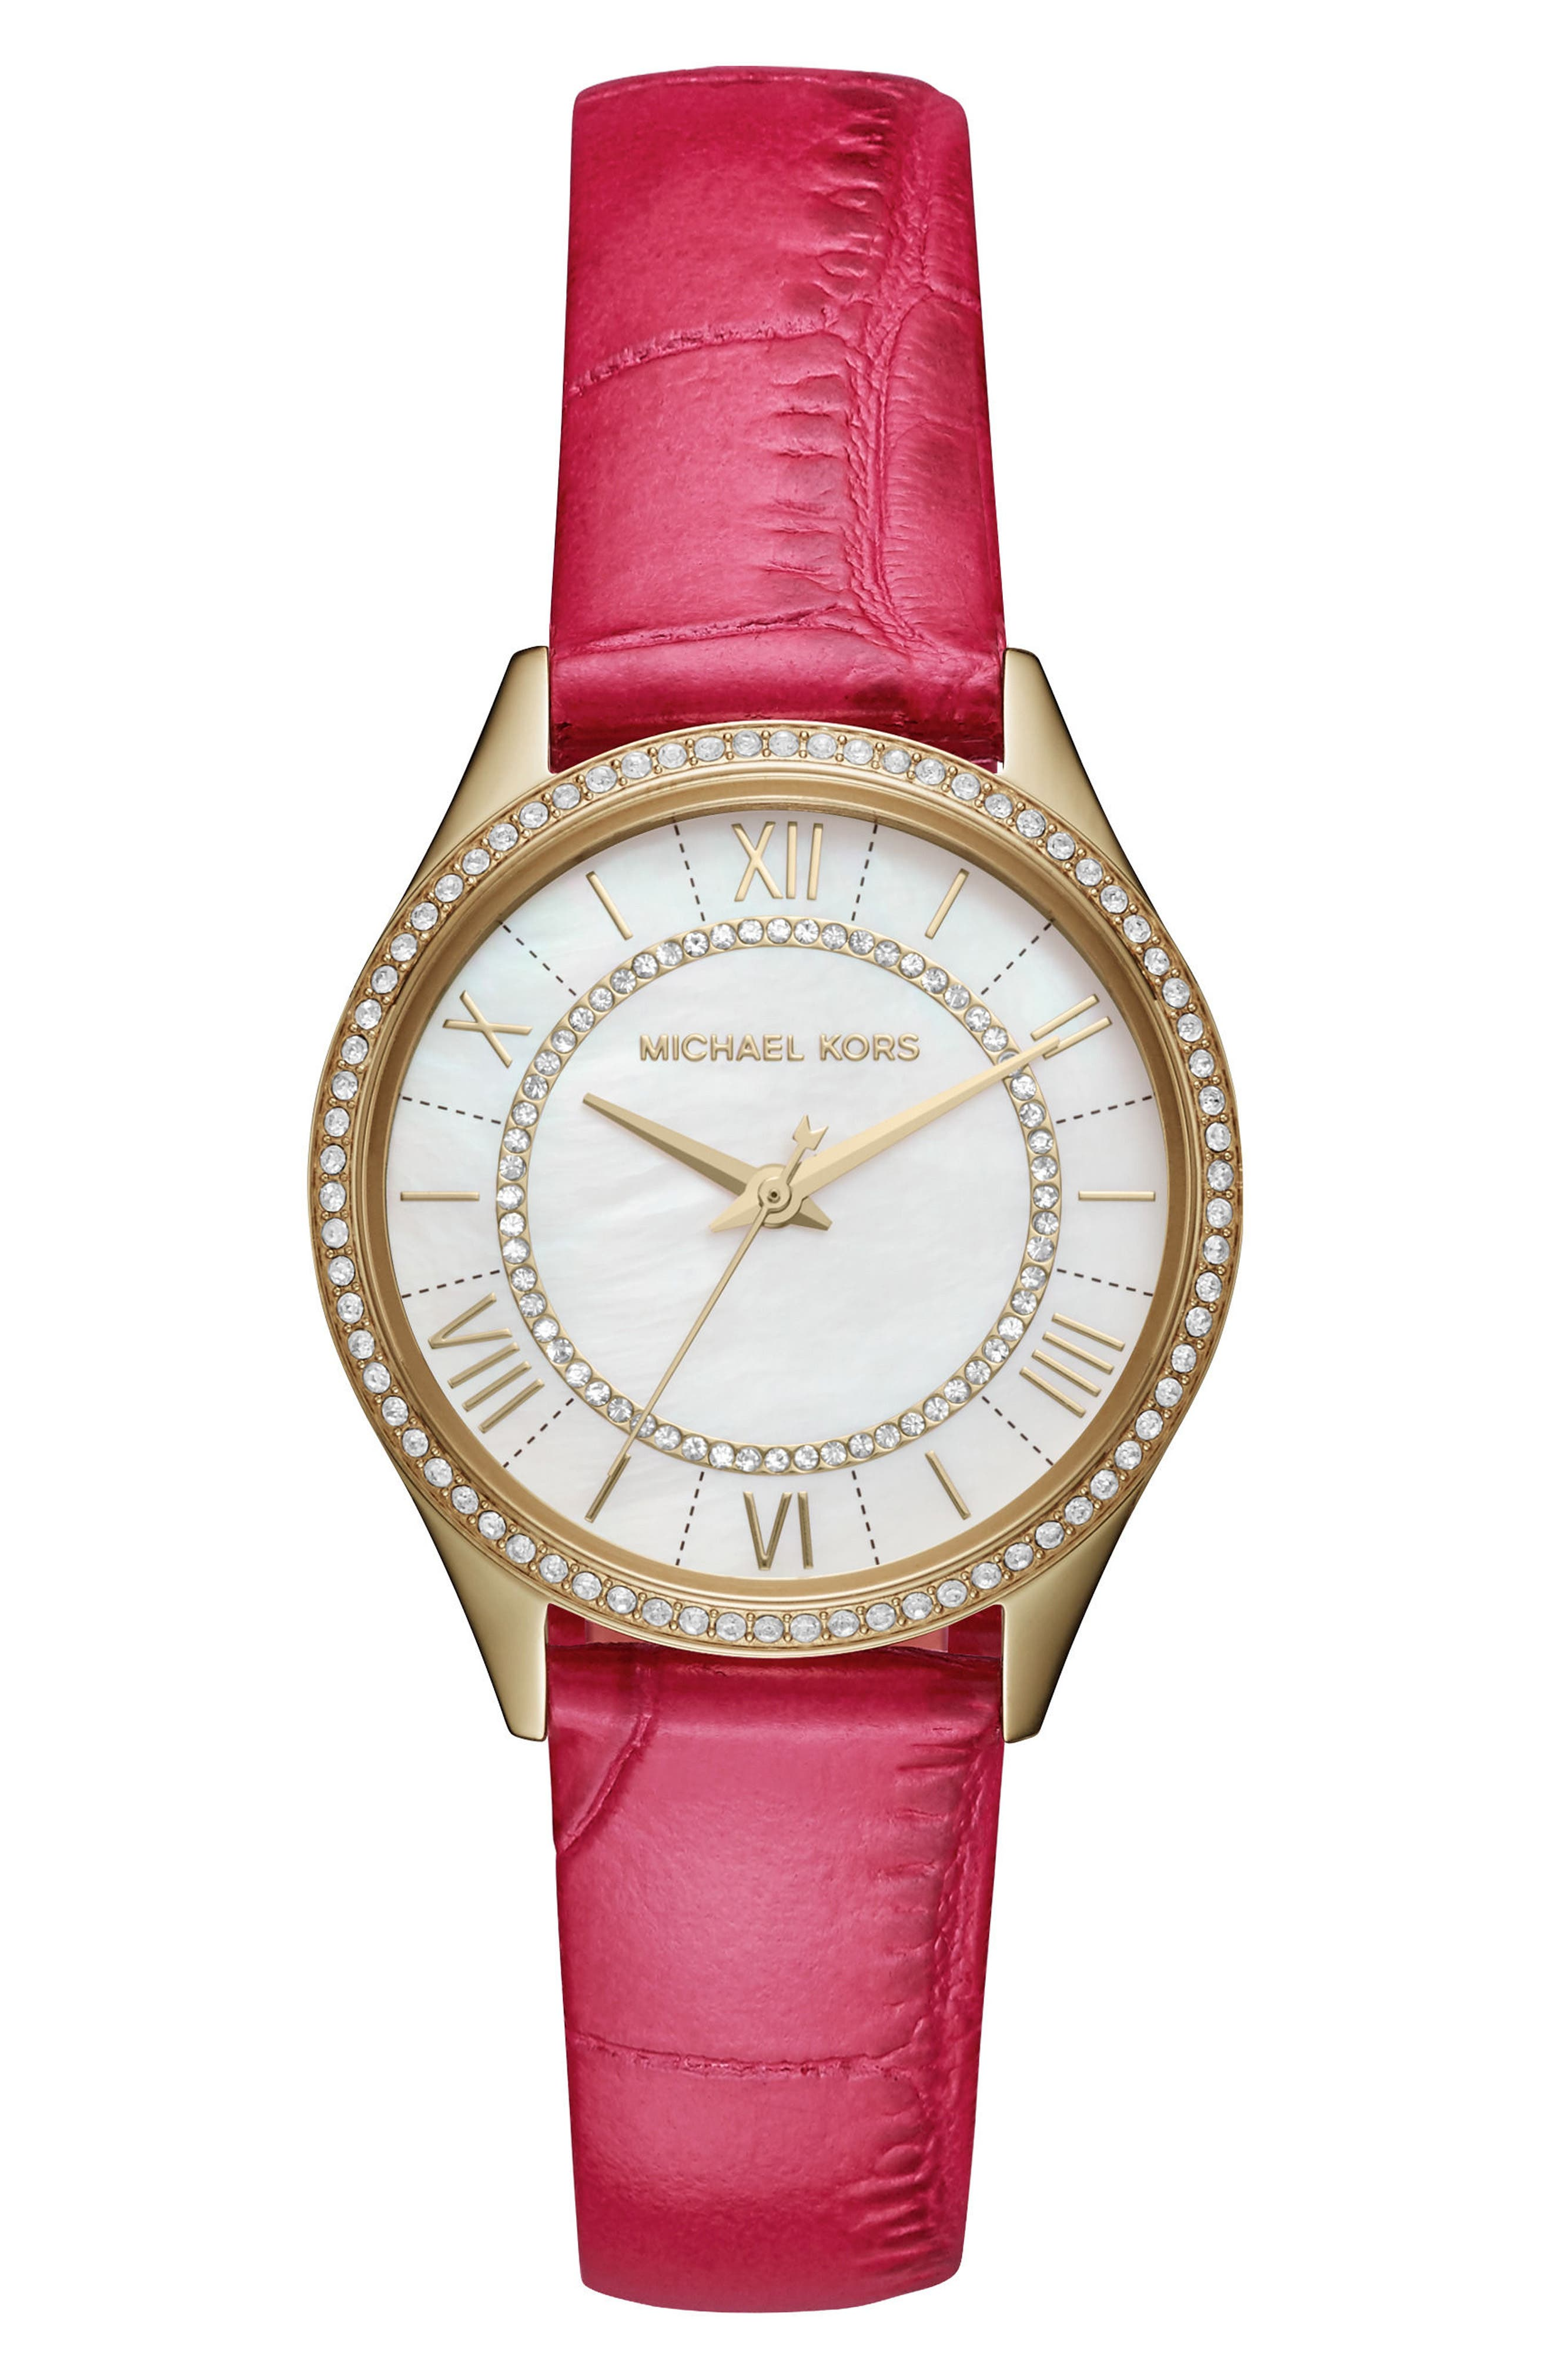 Main Image - Michael Kors Mini Lauryn Leather Strap Watch, 33mm